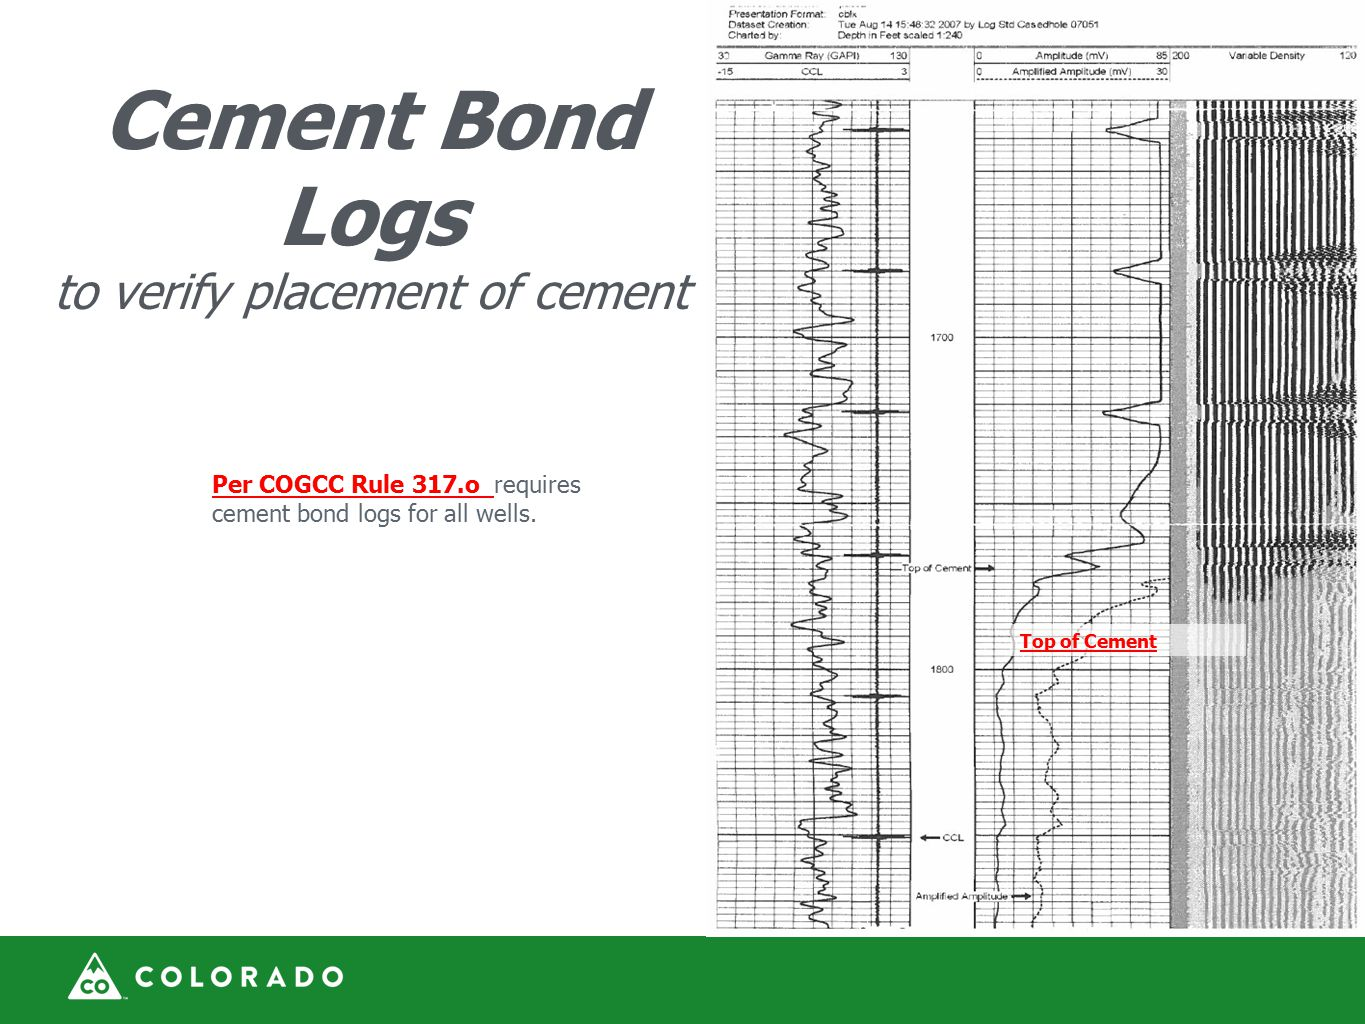 Per COGCC Rule 317.o requires cement bond logs for all wells.